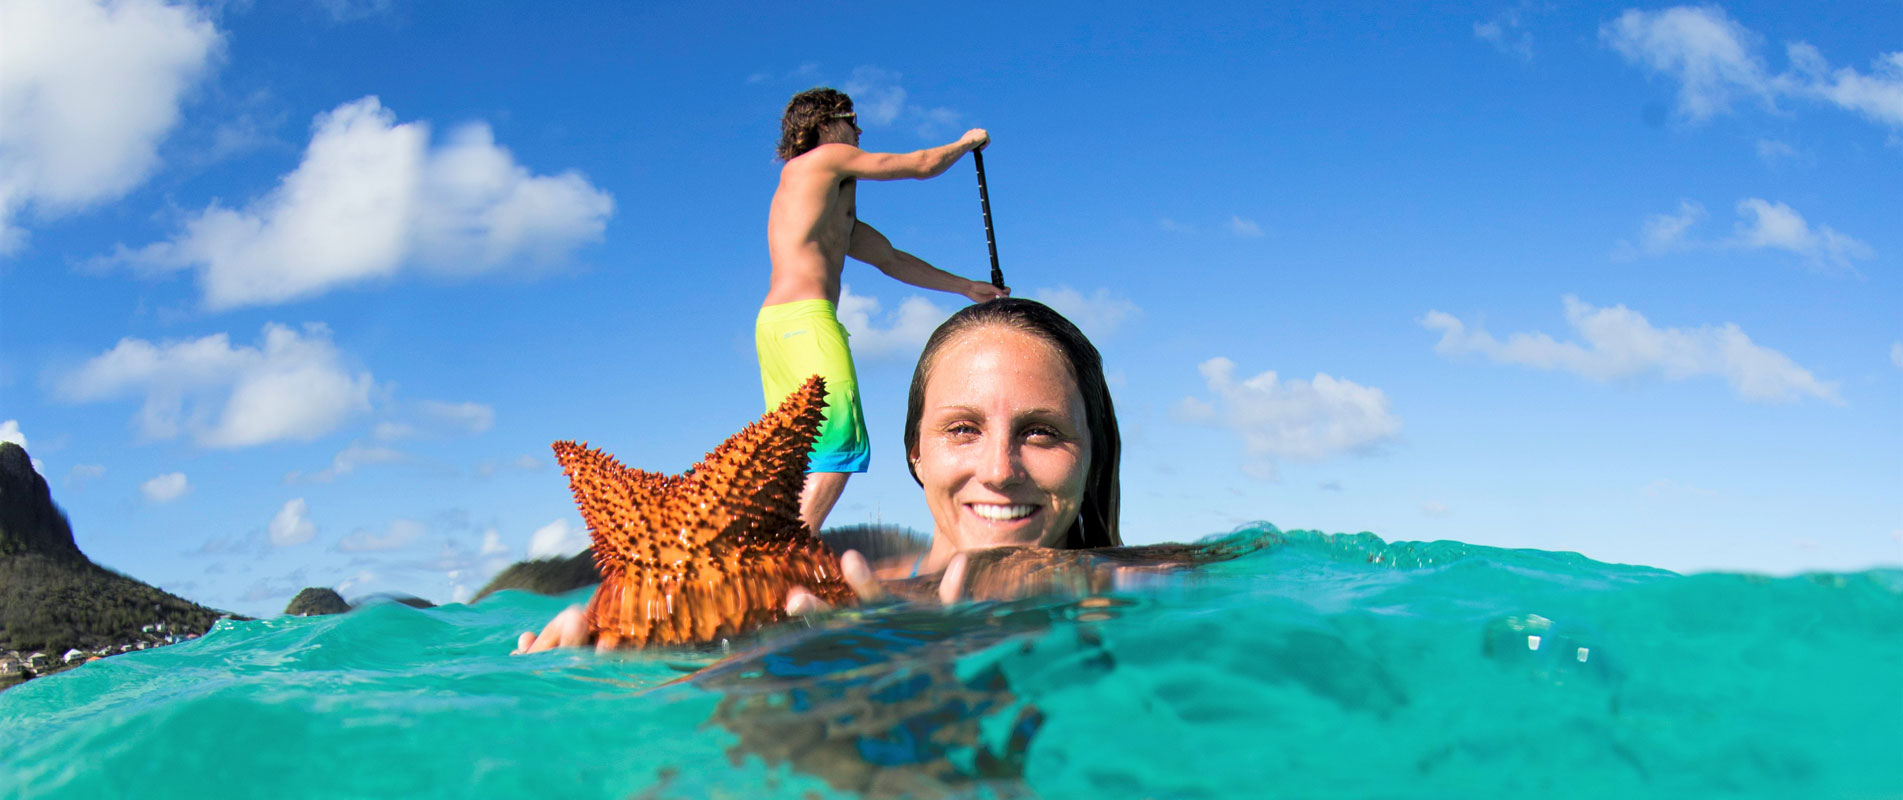 Snorkeling & paddleboard in the Caribbean Grenadines with kite cruise